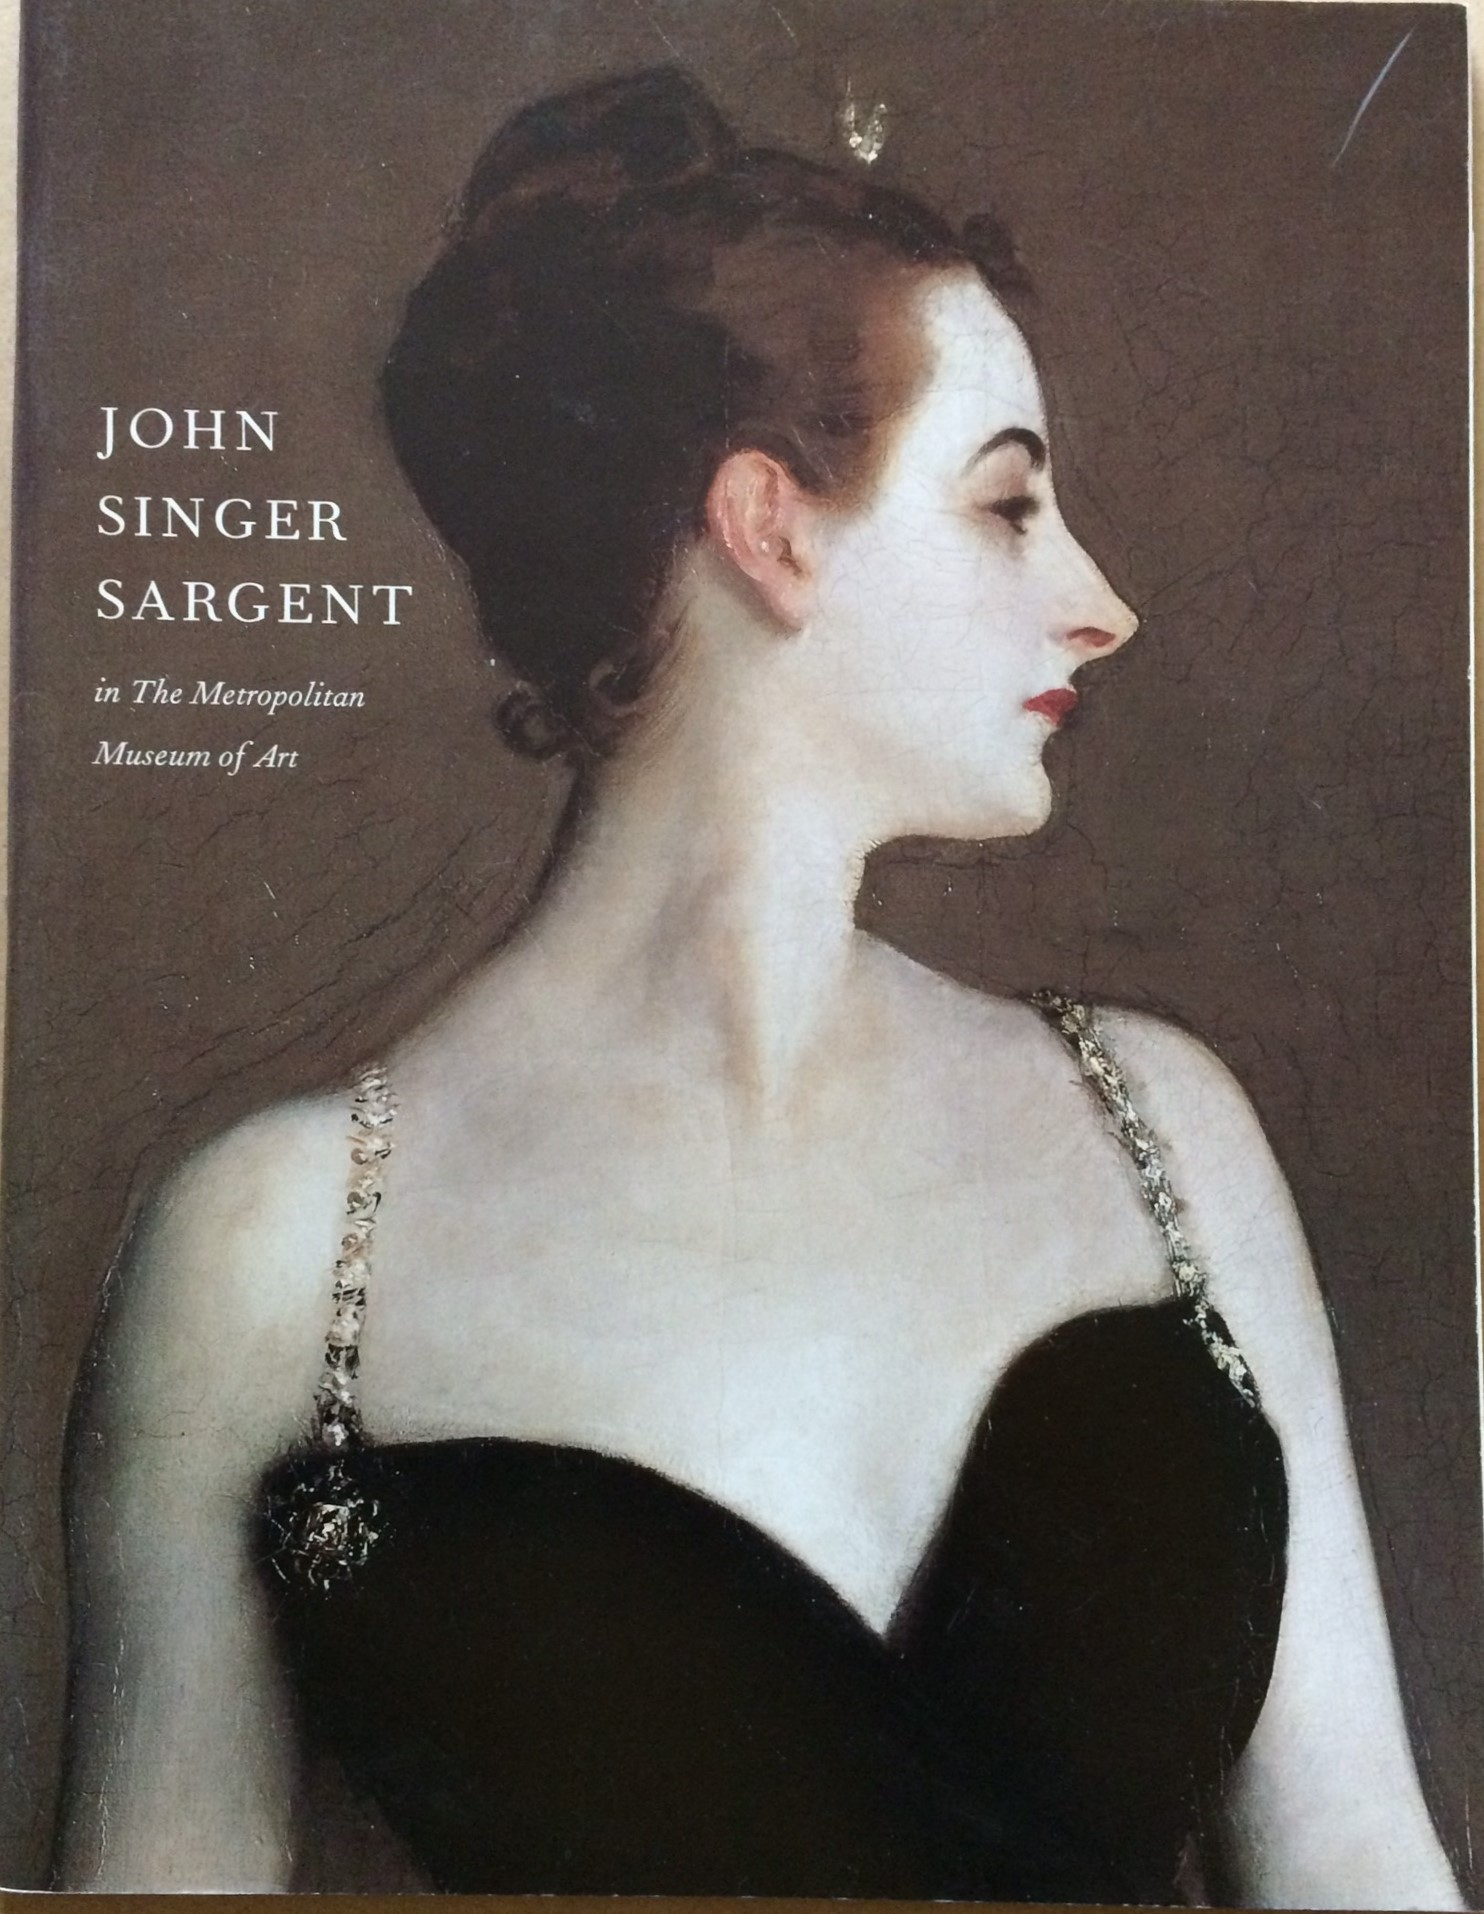 Image for John Singer Sargent in The Metropolitan Museum of Art  / Metropolitan Museum of Art Bulletin